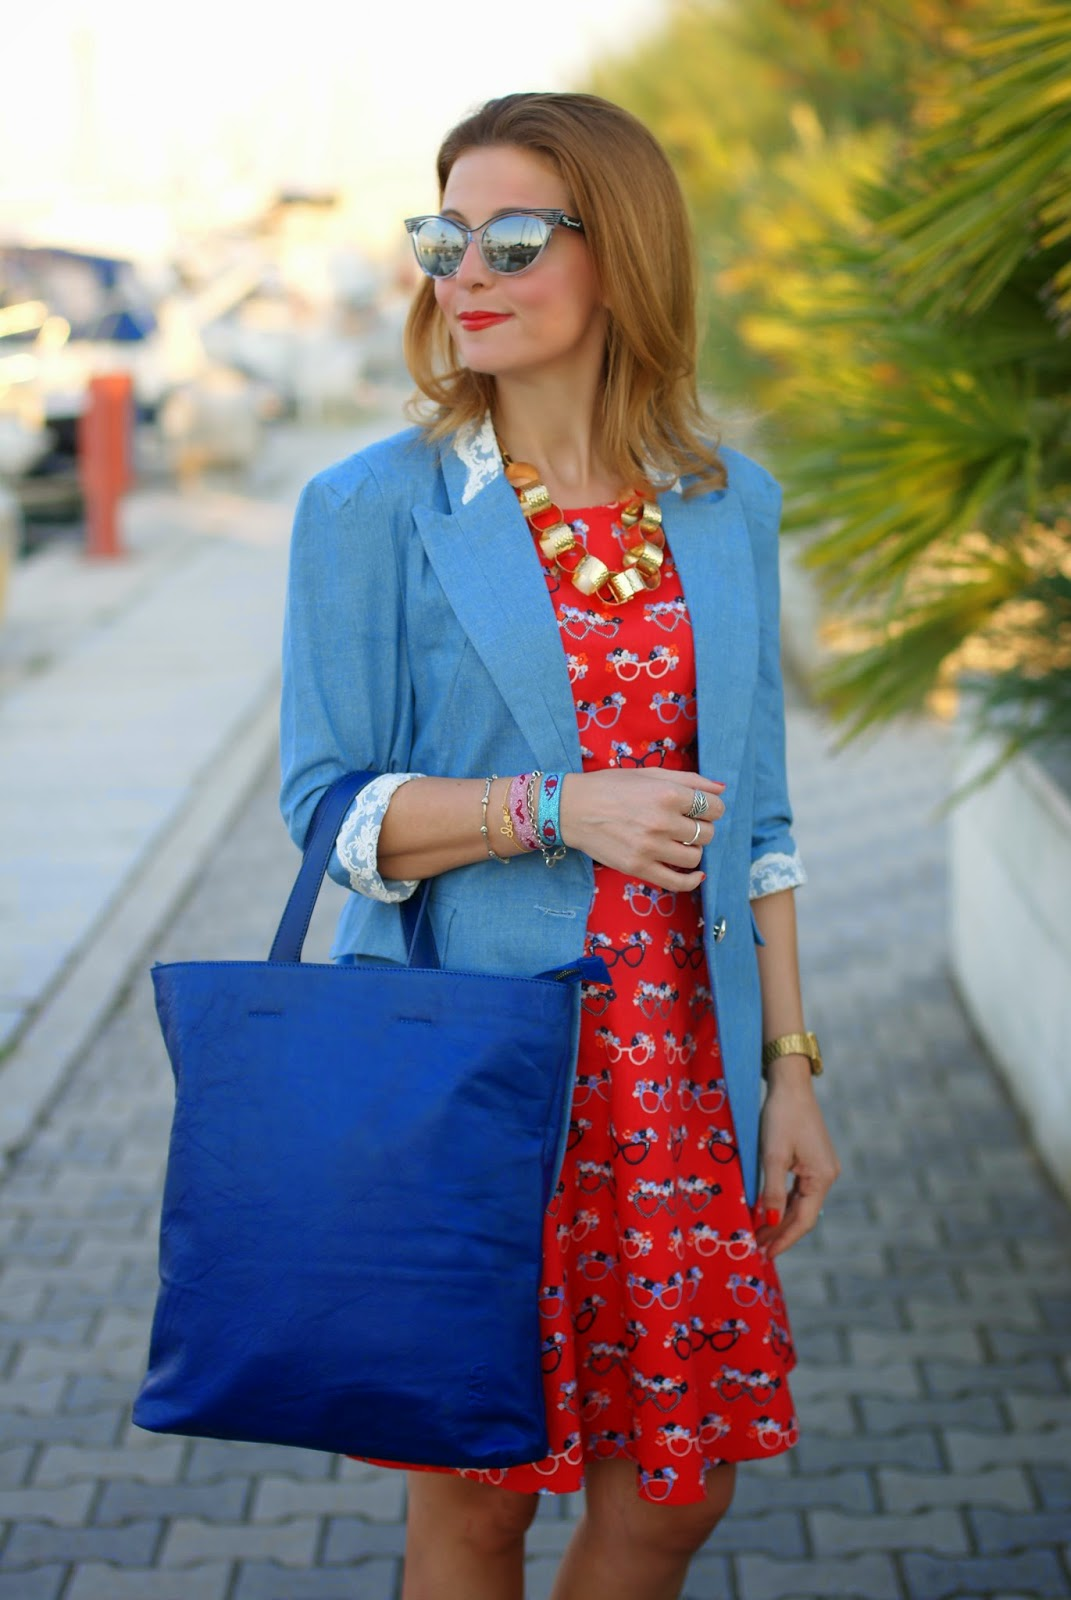 Blackfive denim blazer, nava design shopper bag, yumi glasses print dress, Fashion and Cookies, fashion blogger